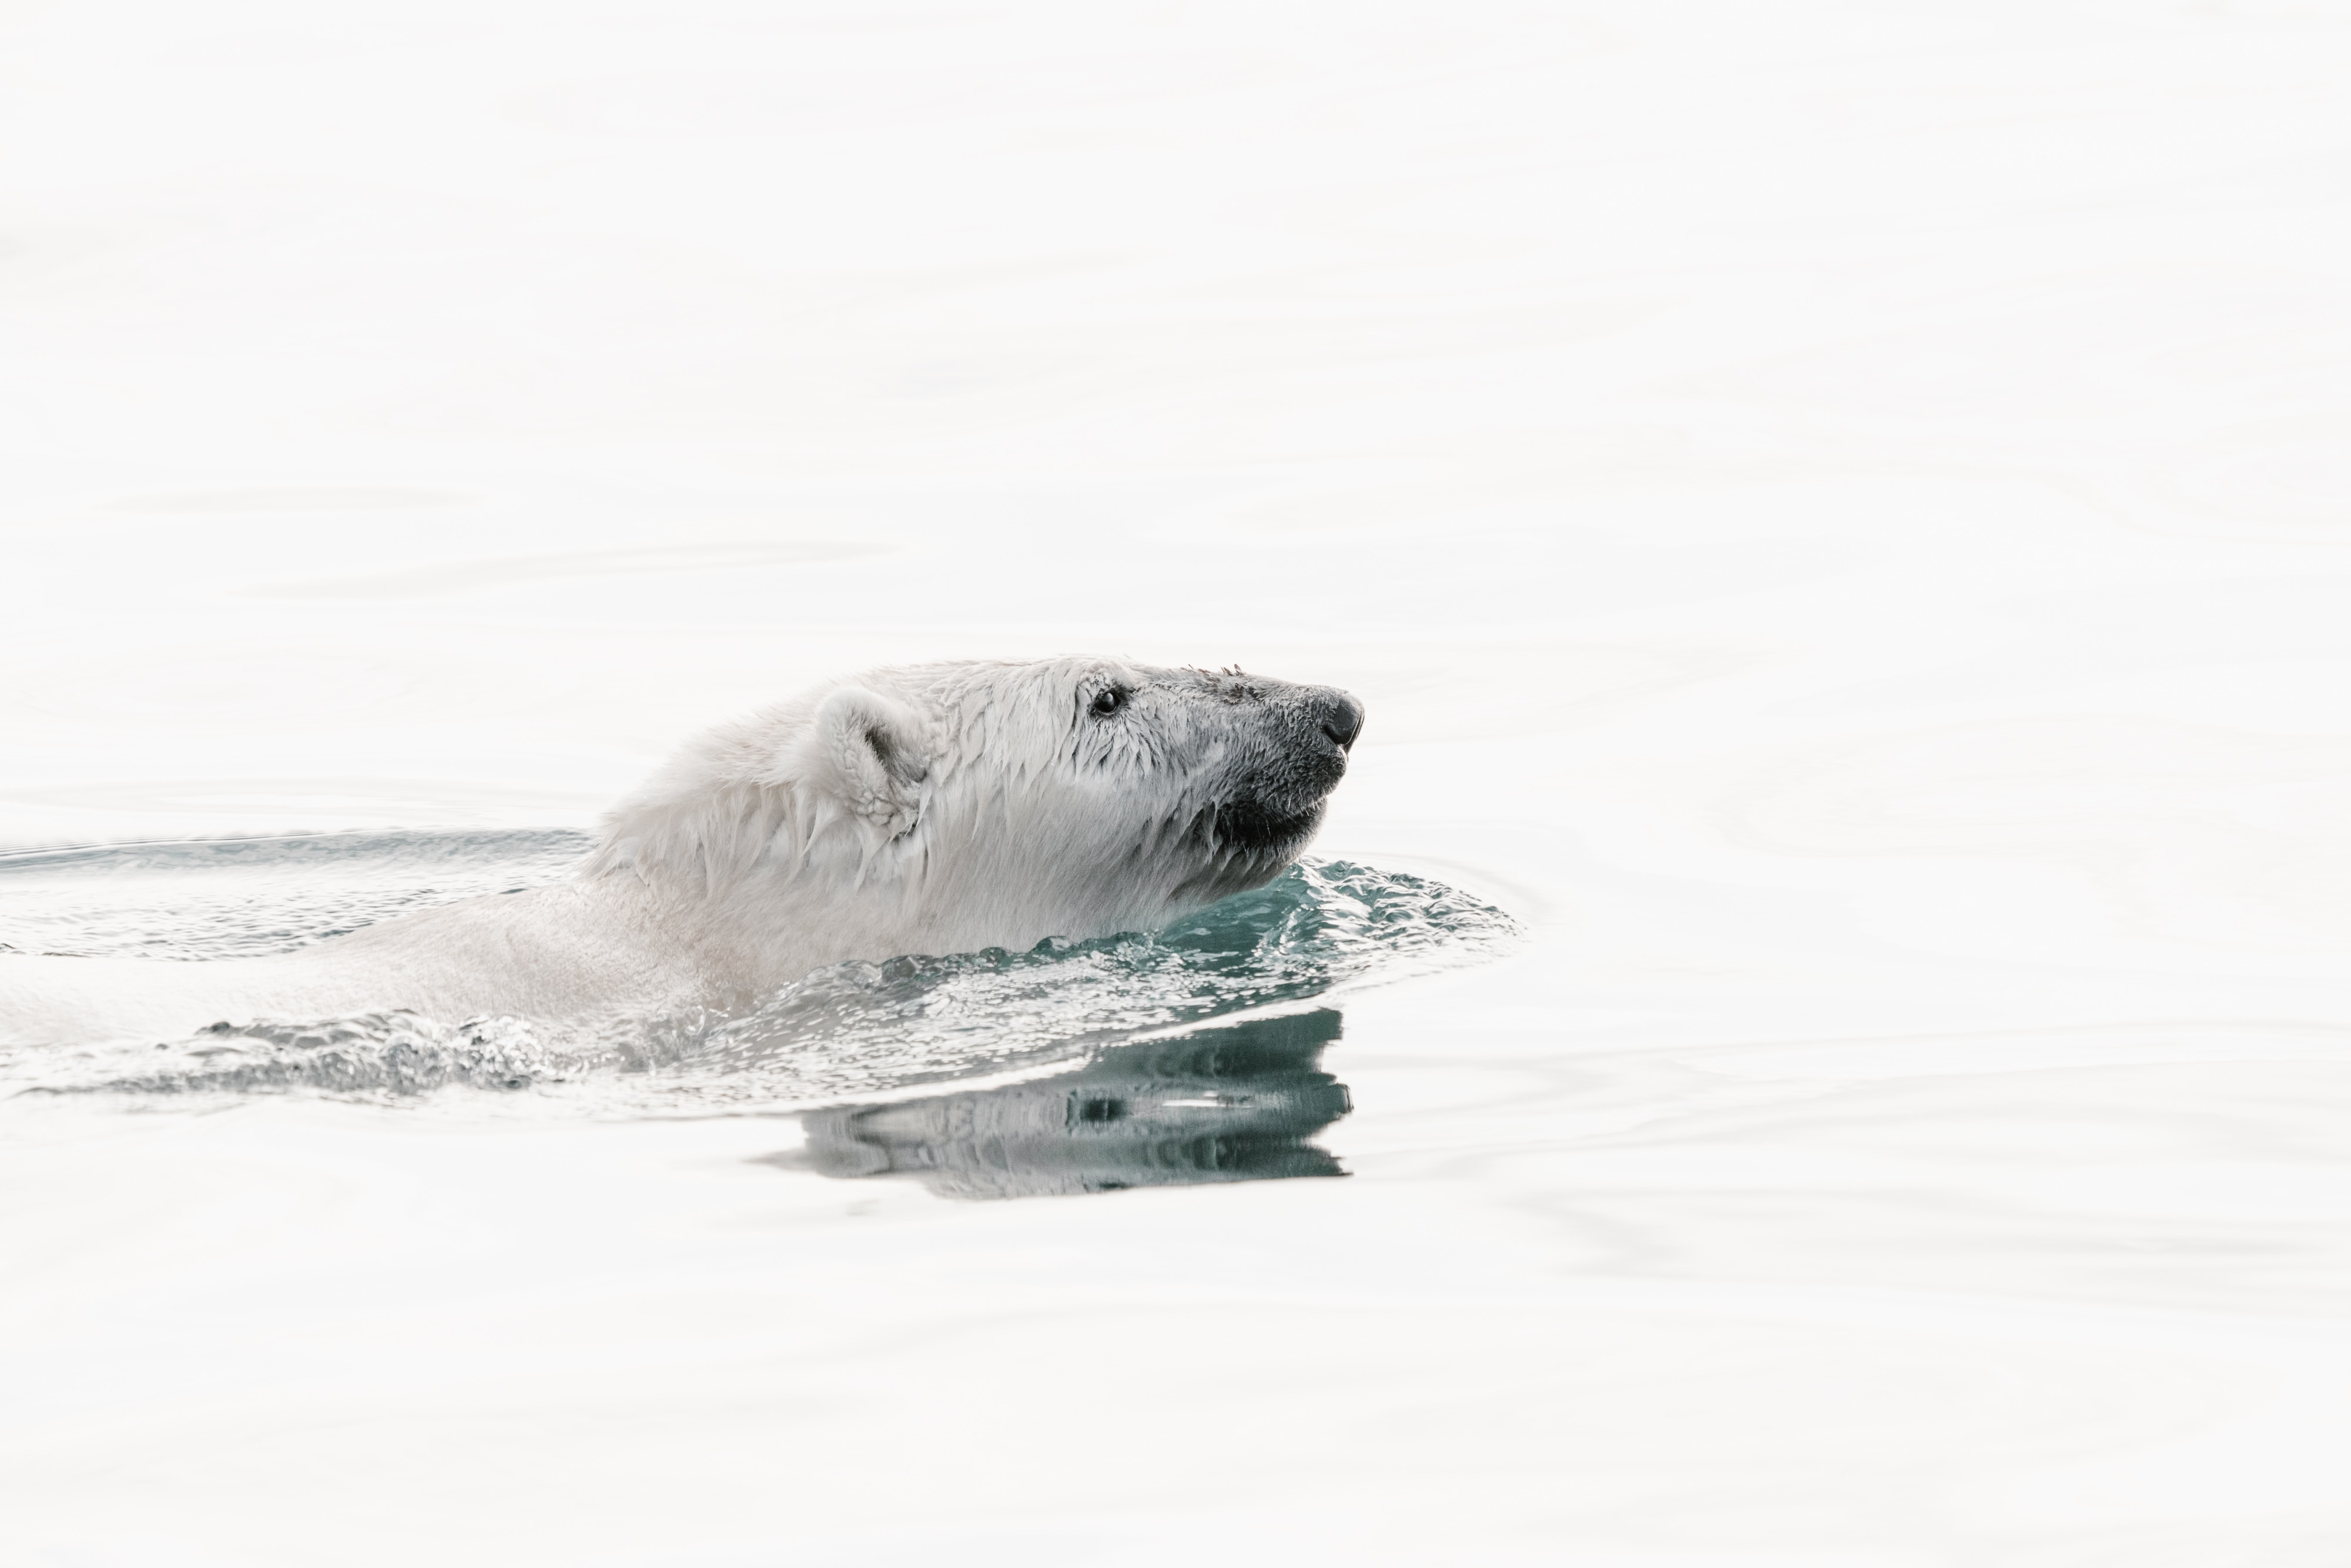 white polar bear swimming in water